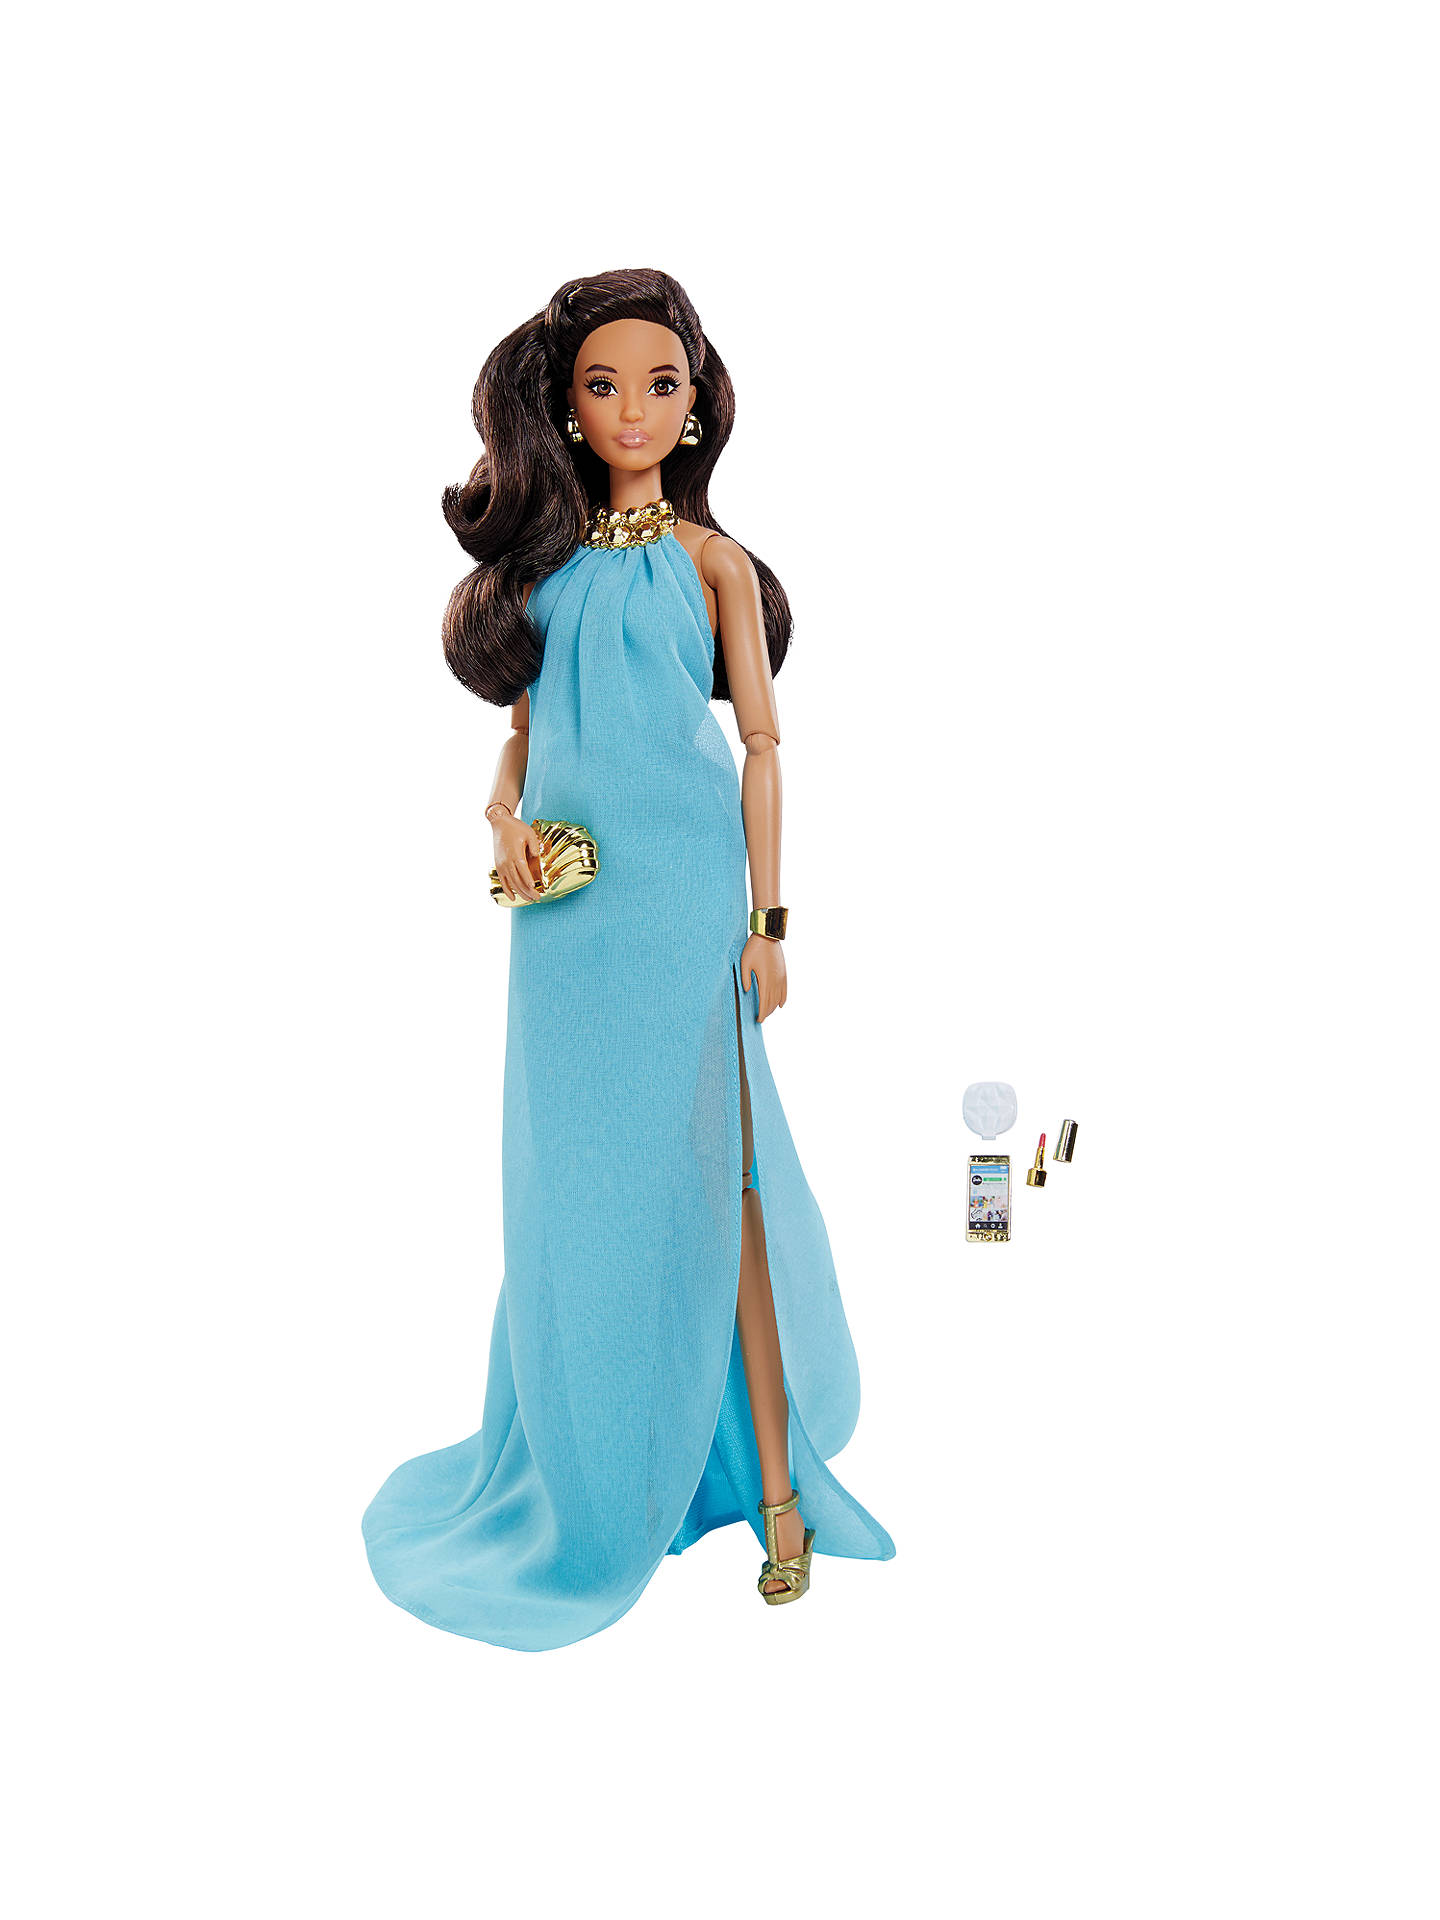 a5ead7772345e Barbie Look Collectable Pool Party Pretty Blue Dress Doll at John ...